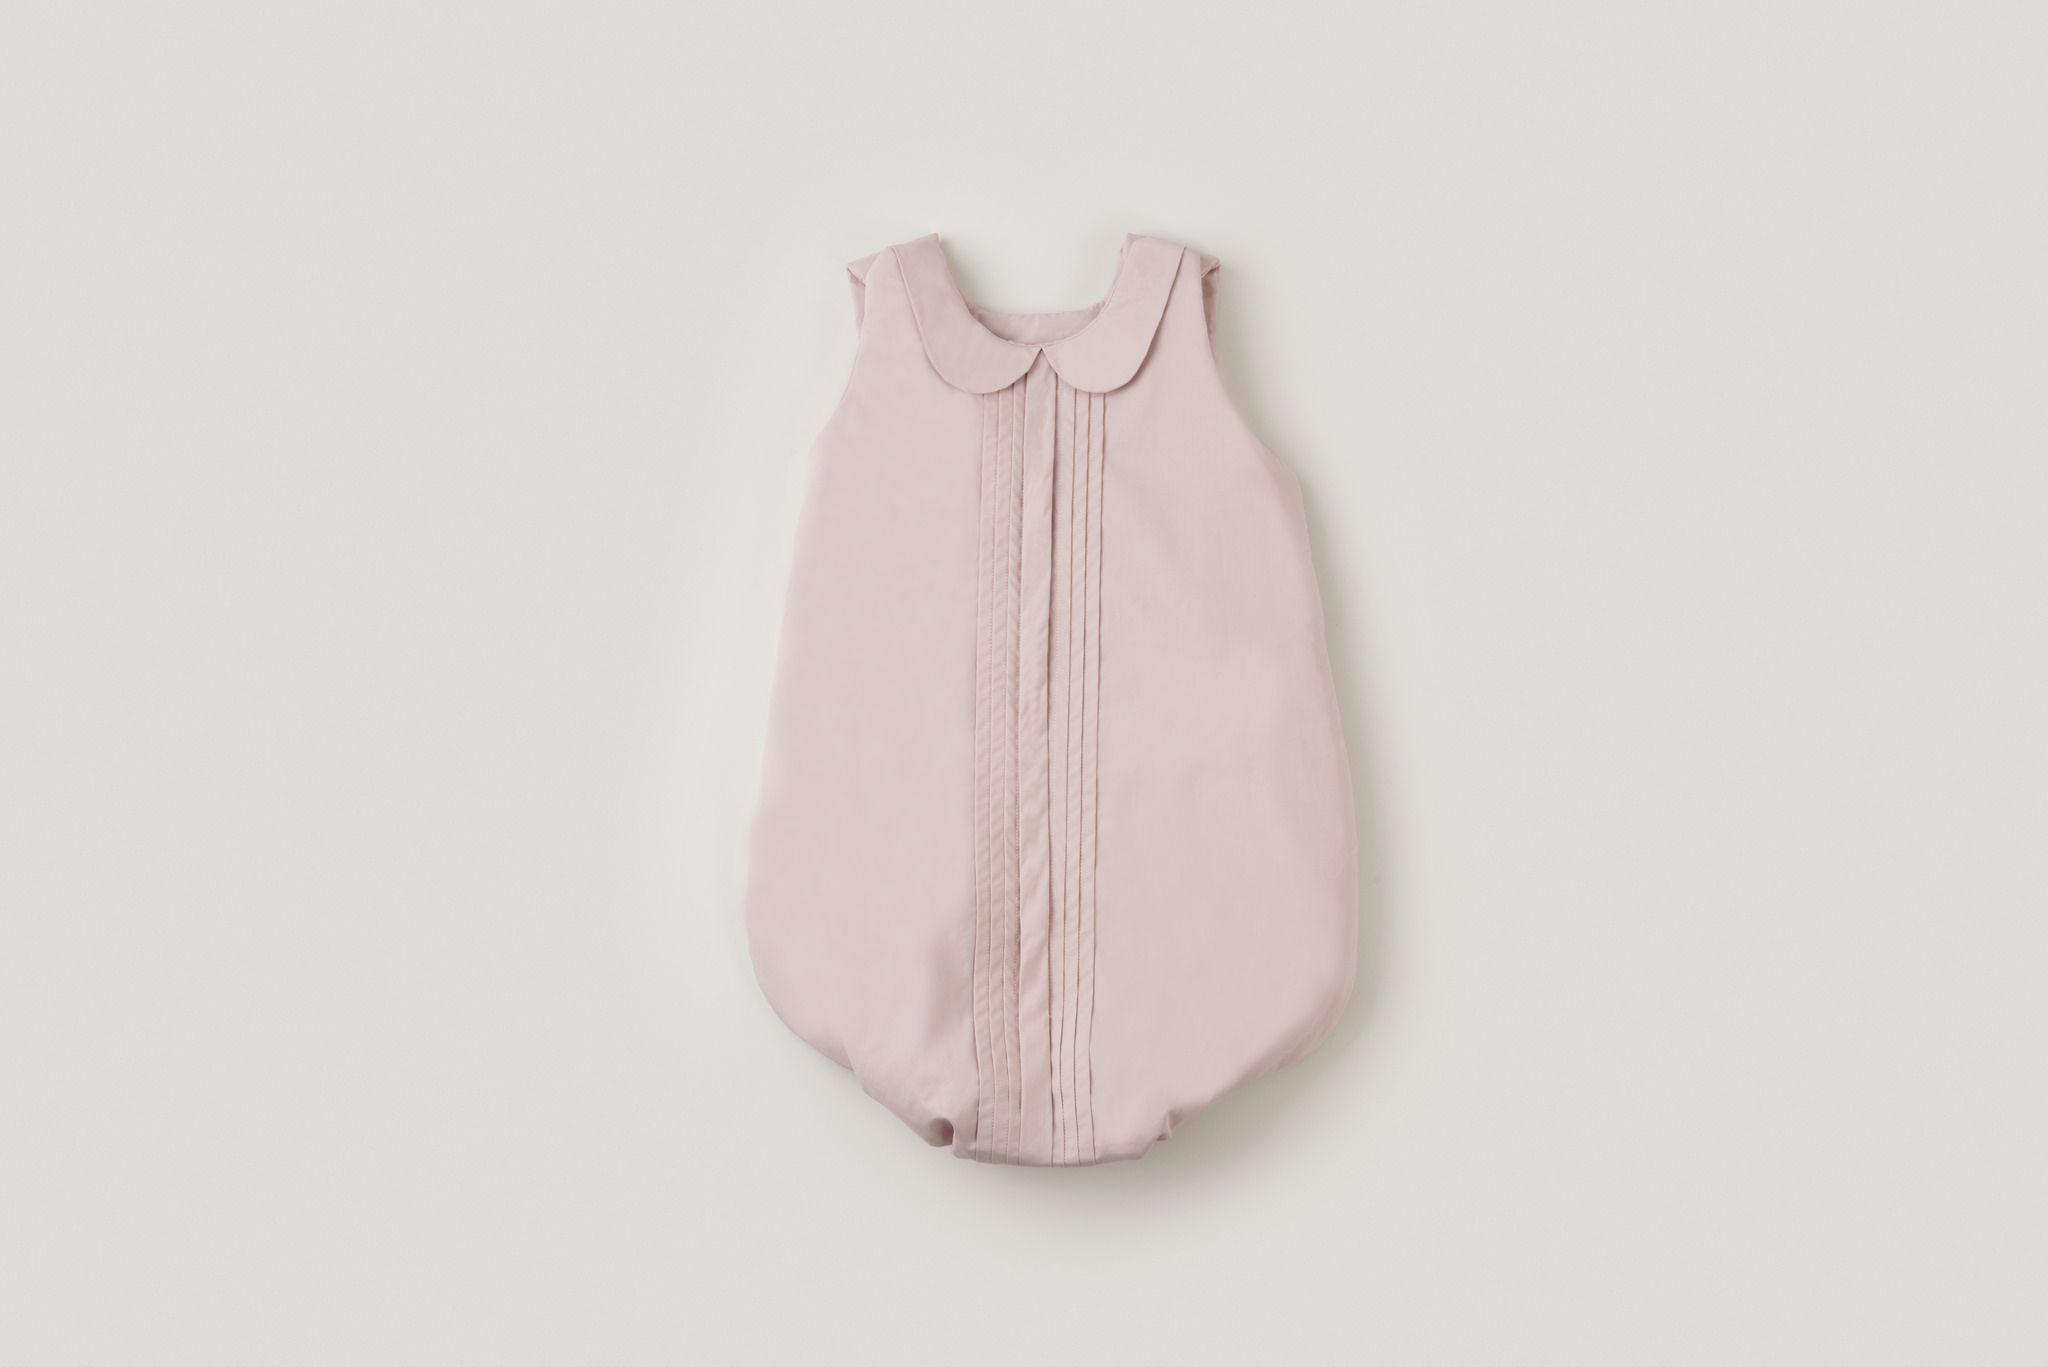 Garbo&Friends Pink - Pleats Rosy Sleepbag - Clothing